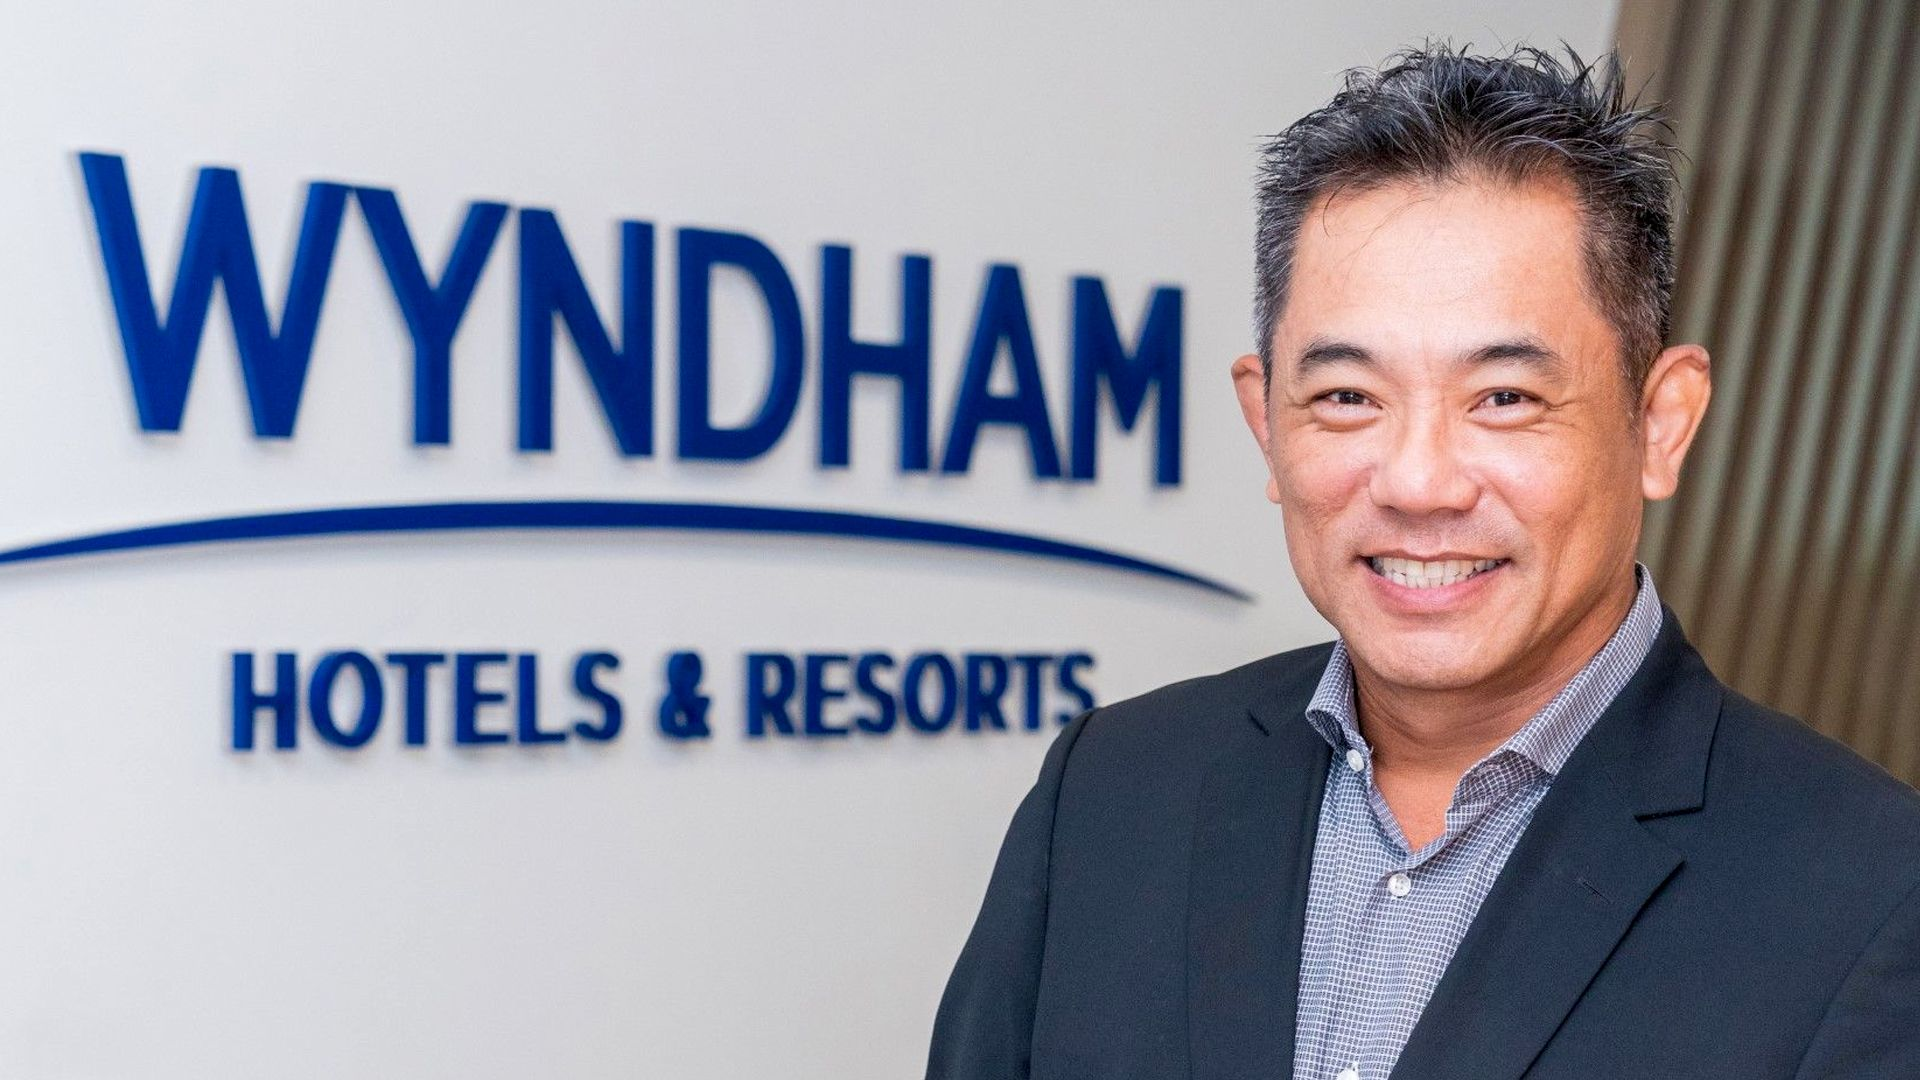 """Wyndham Hotels & Resorts President (Asia Pacific) says """"Owners see the Importance of the Franchise Model Now More Than Ever"""""""